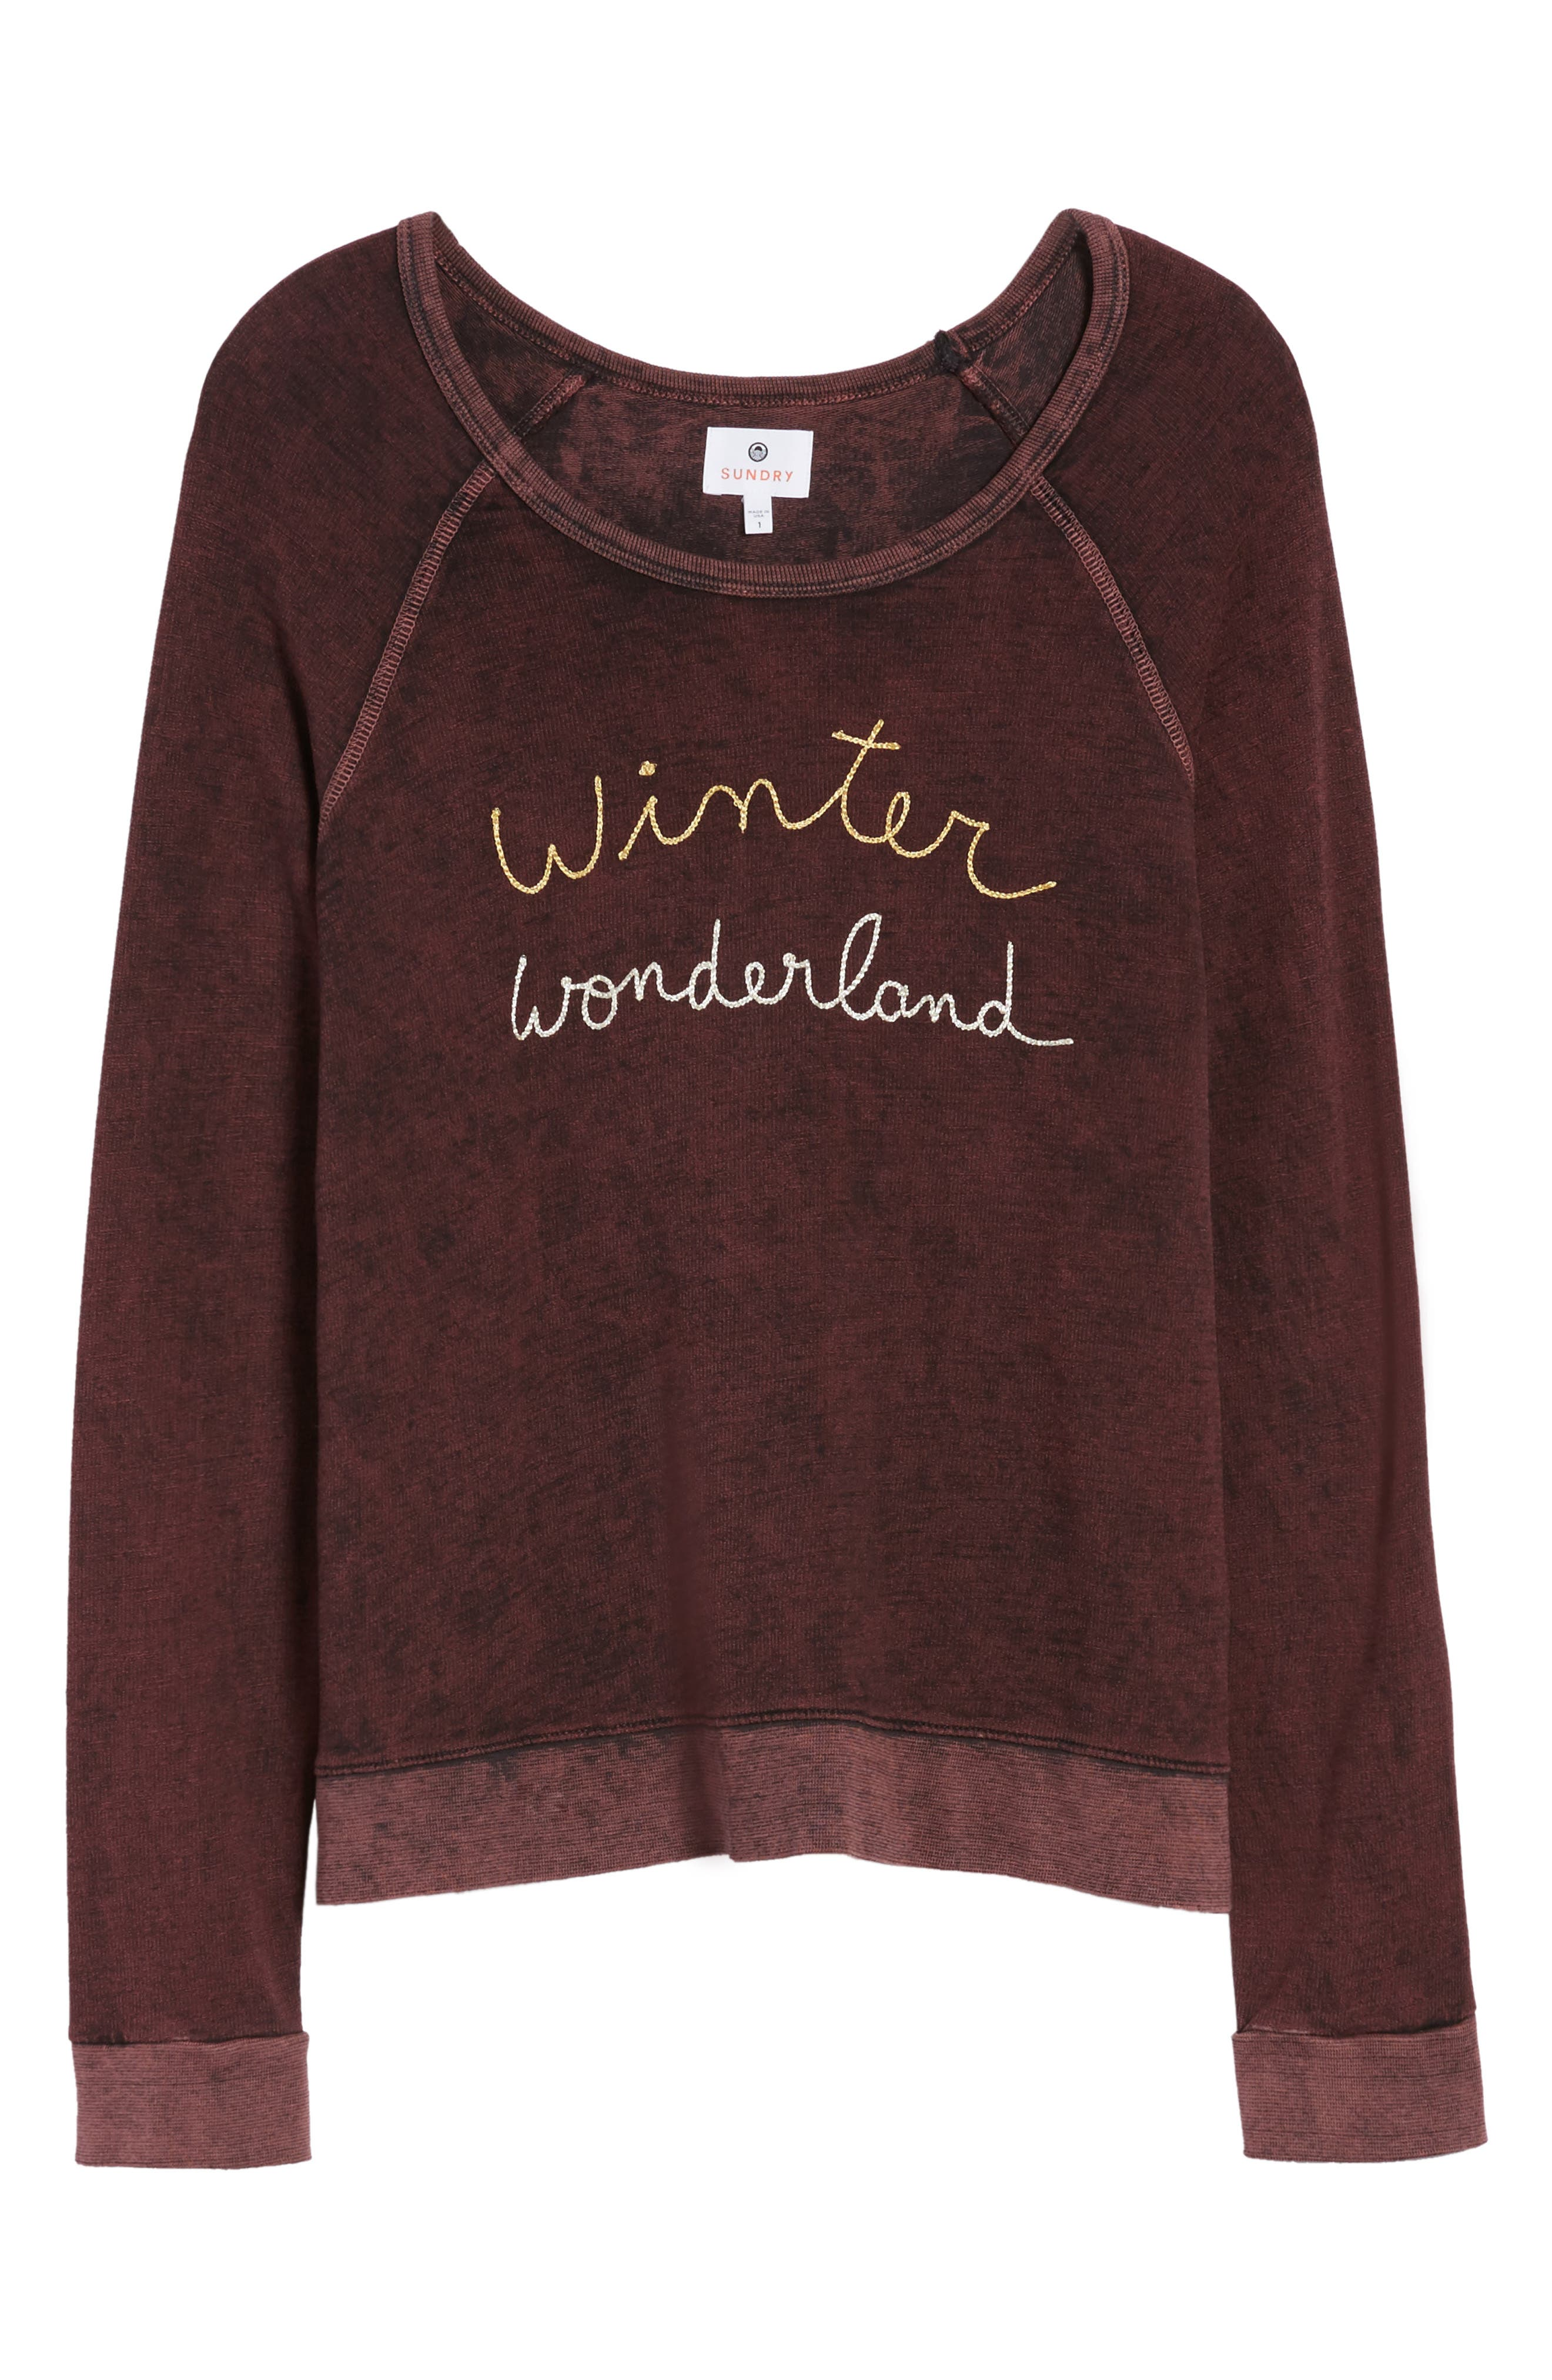 Active Winter Wonderland Sweatshirt,                             Alternate thumbnail 6, color,                             931